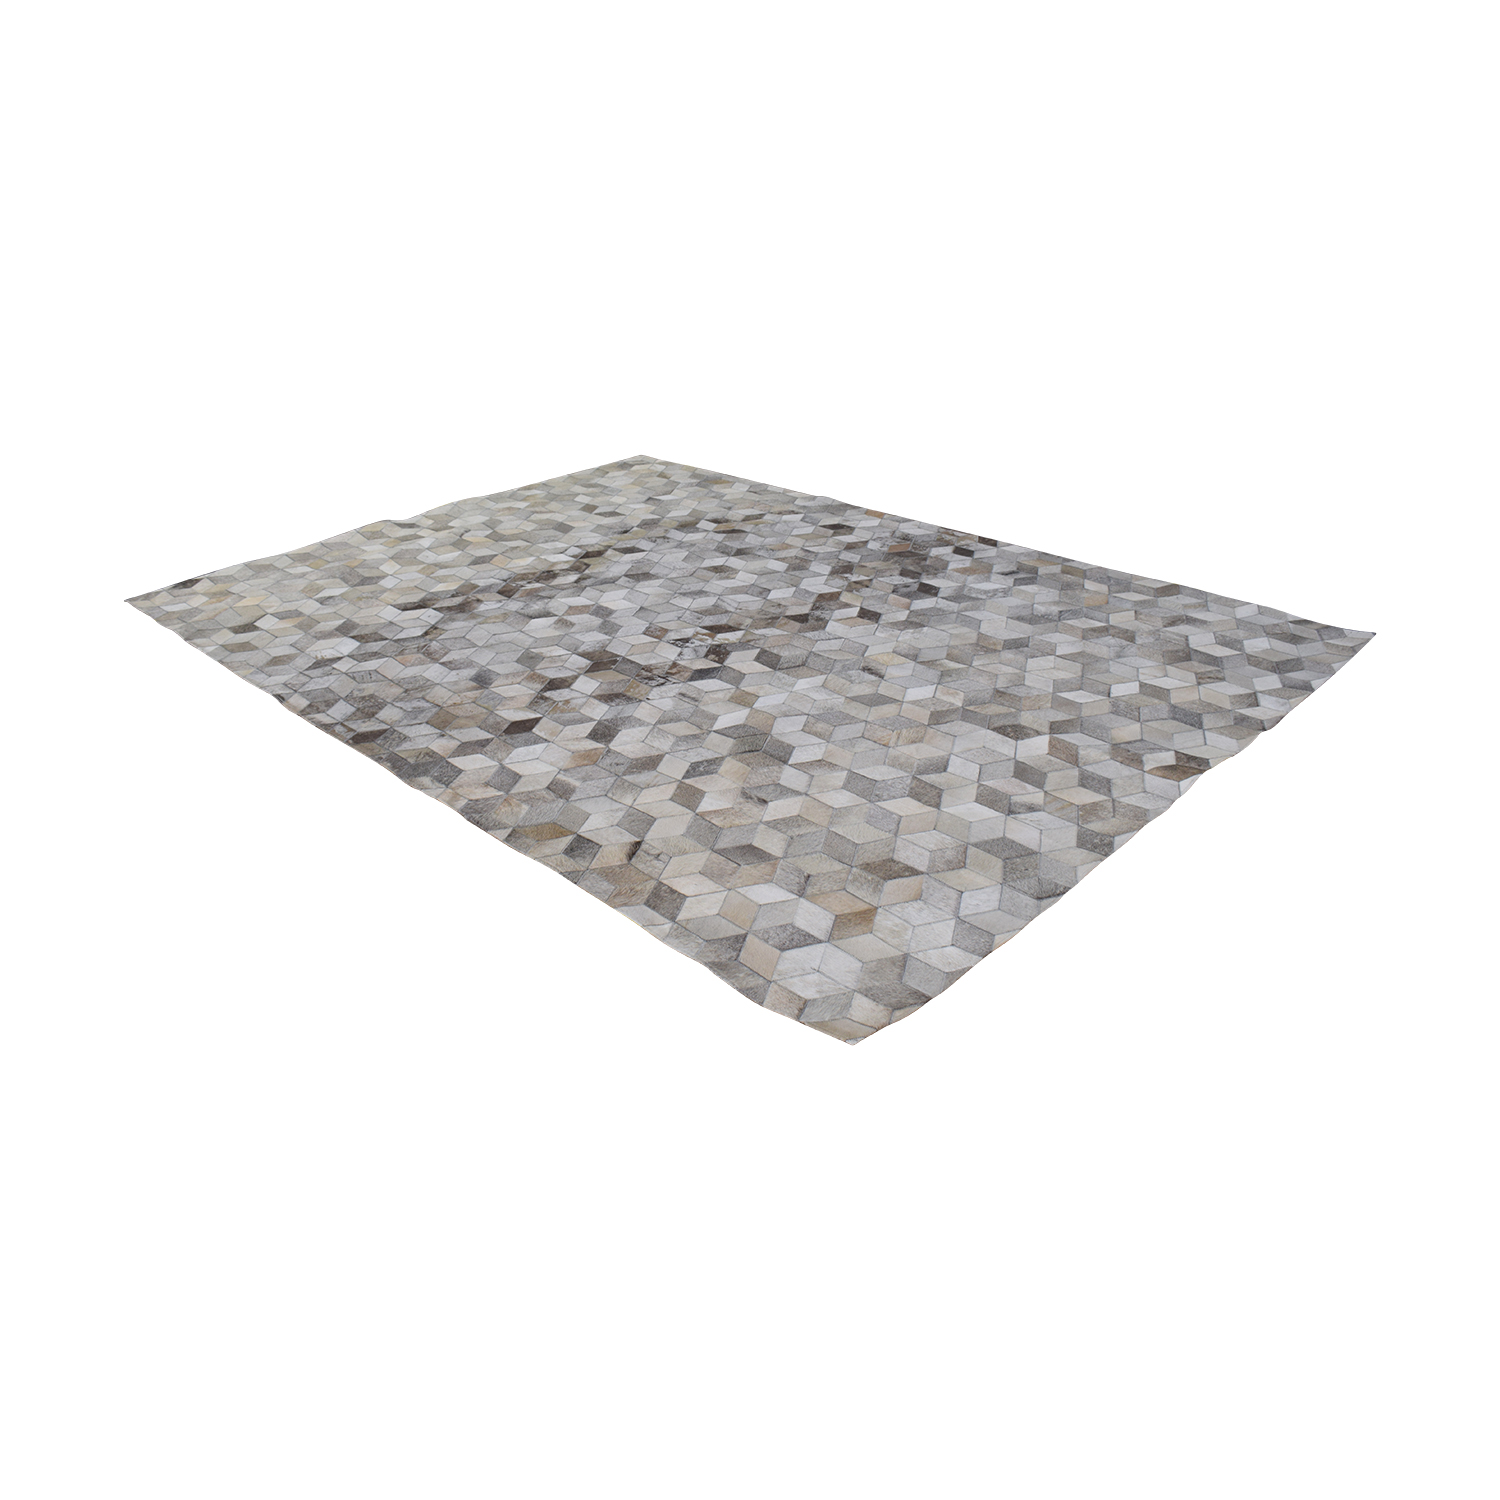 Exquisite Rugs Natural Hide Area Rug / Rugs